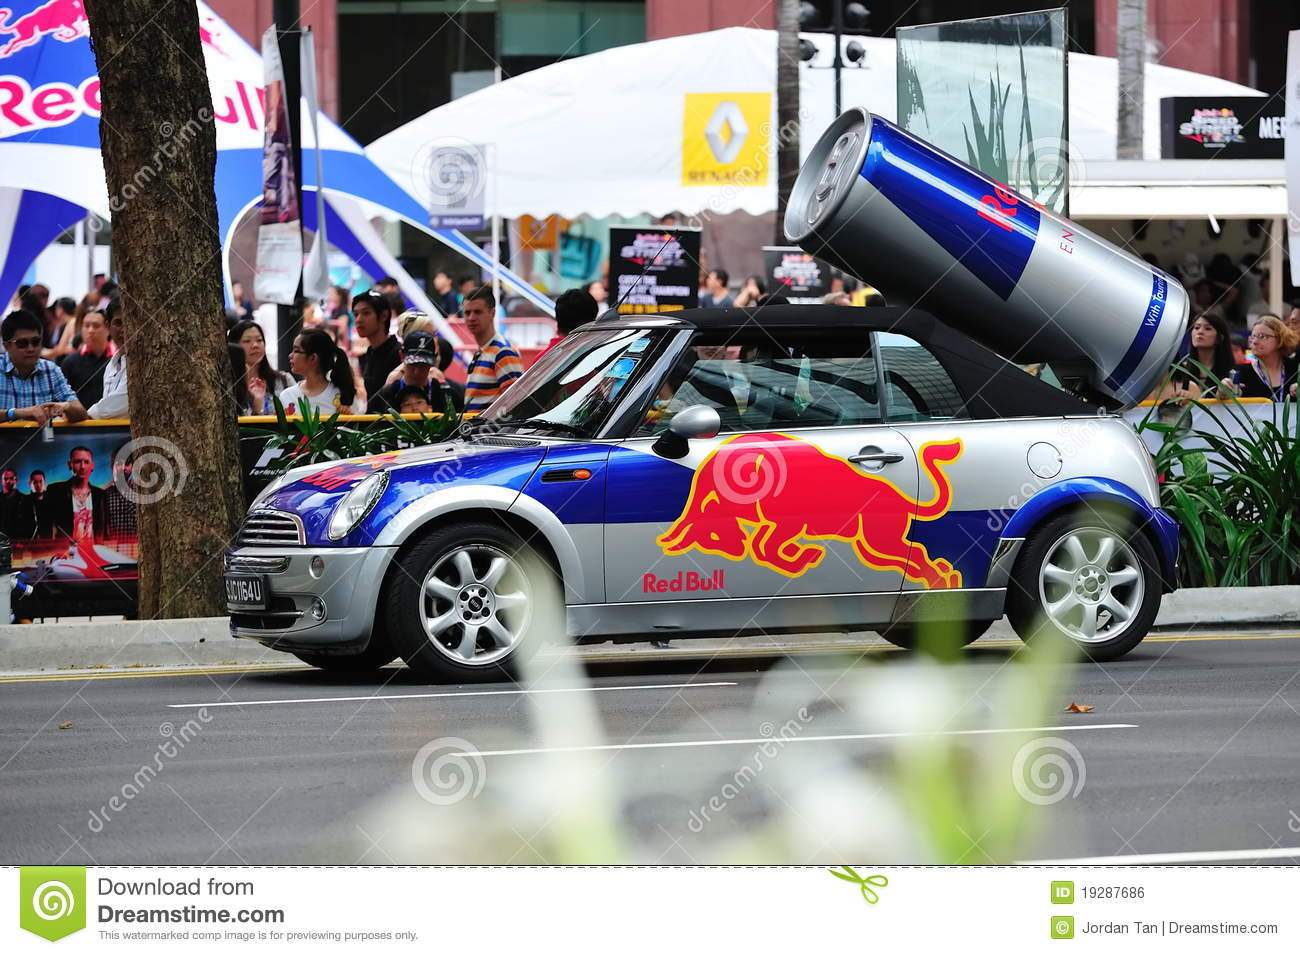 How To Drive The Red Bull Car